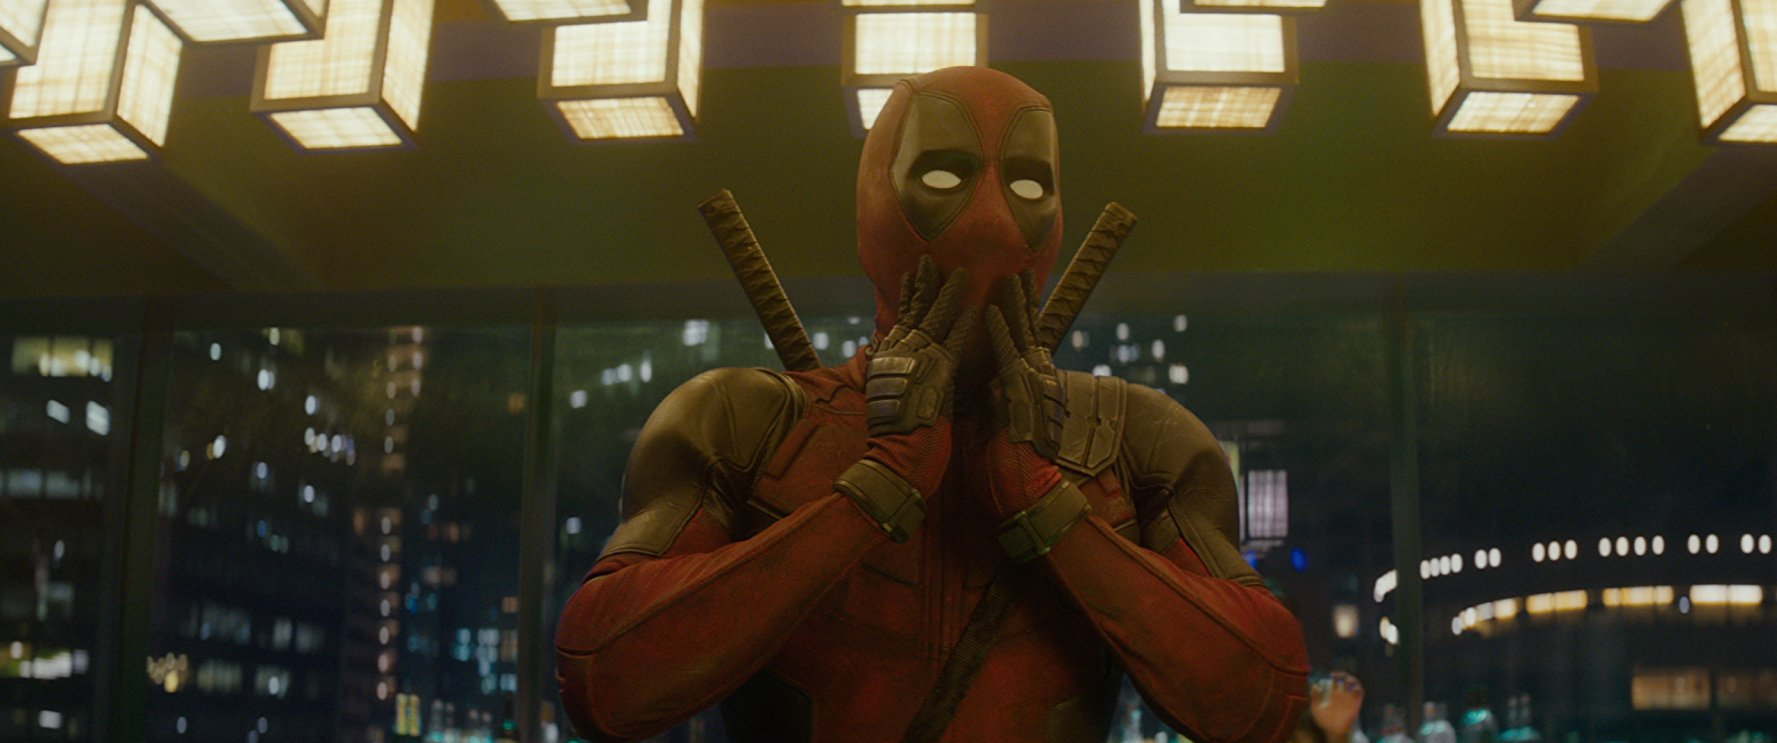 Deadpool 2 has a major clue about the future of Fox's mutants